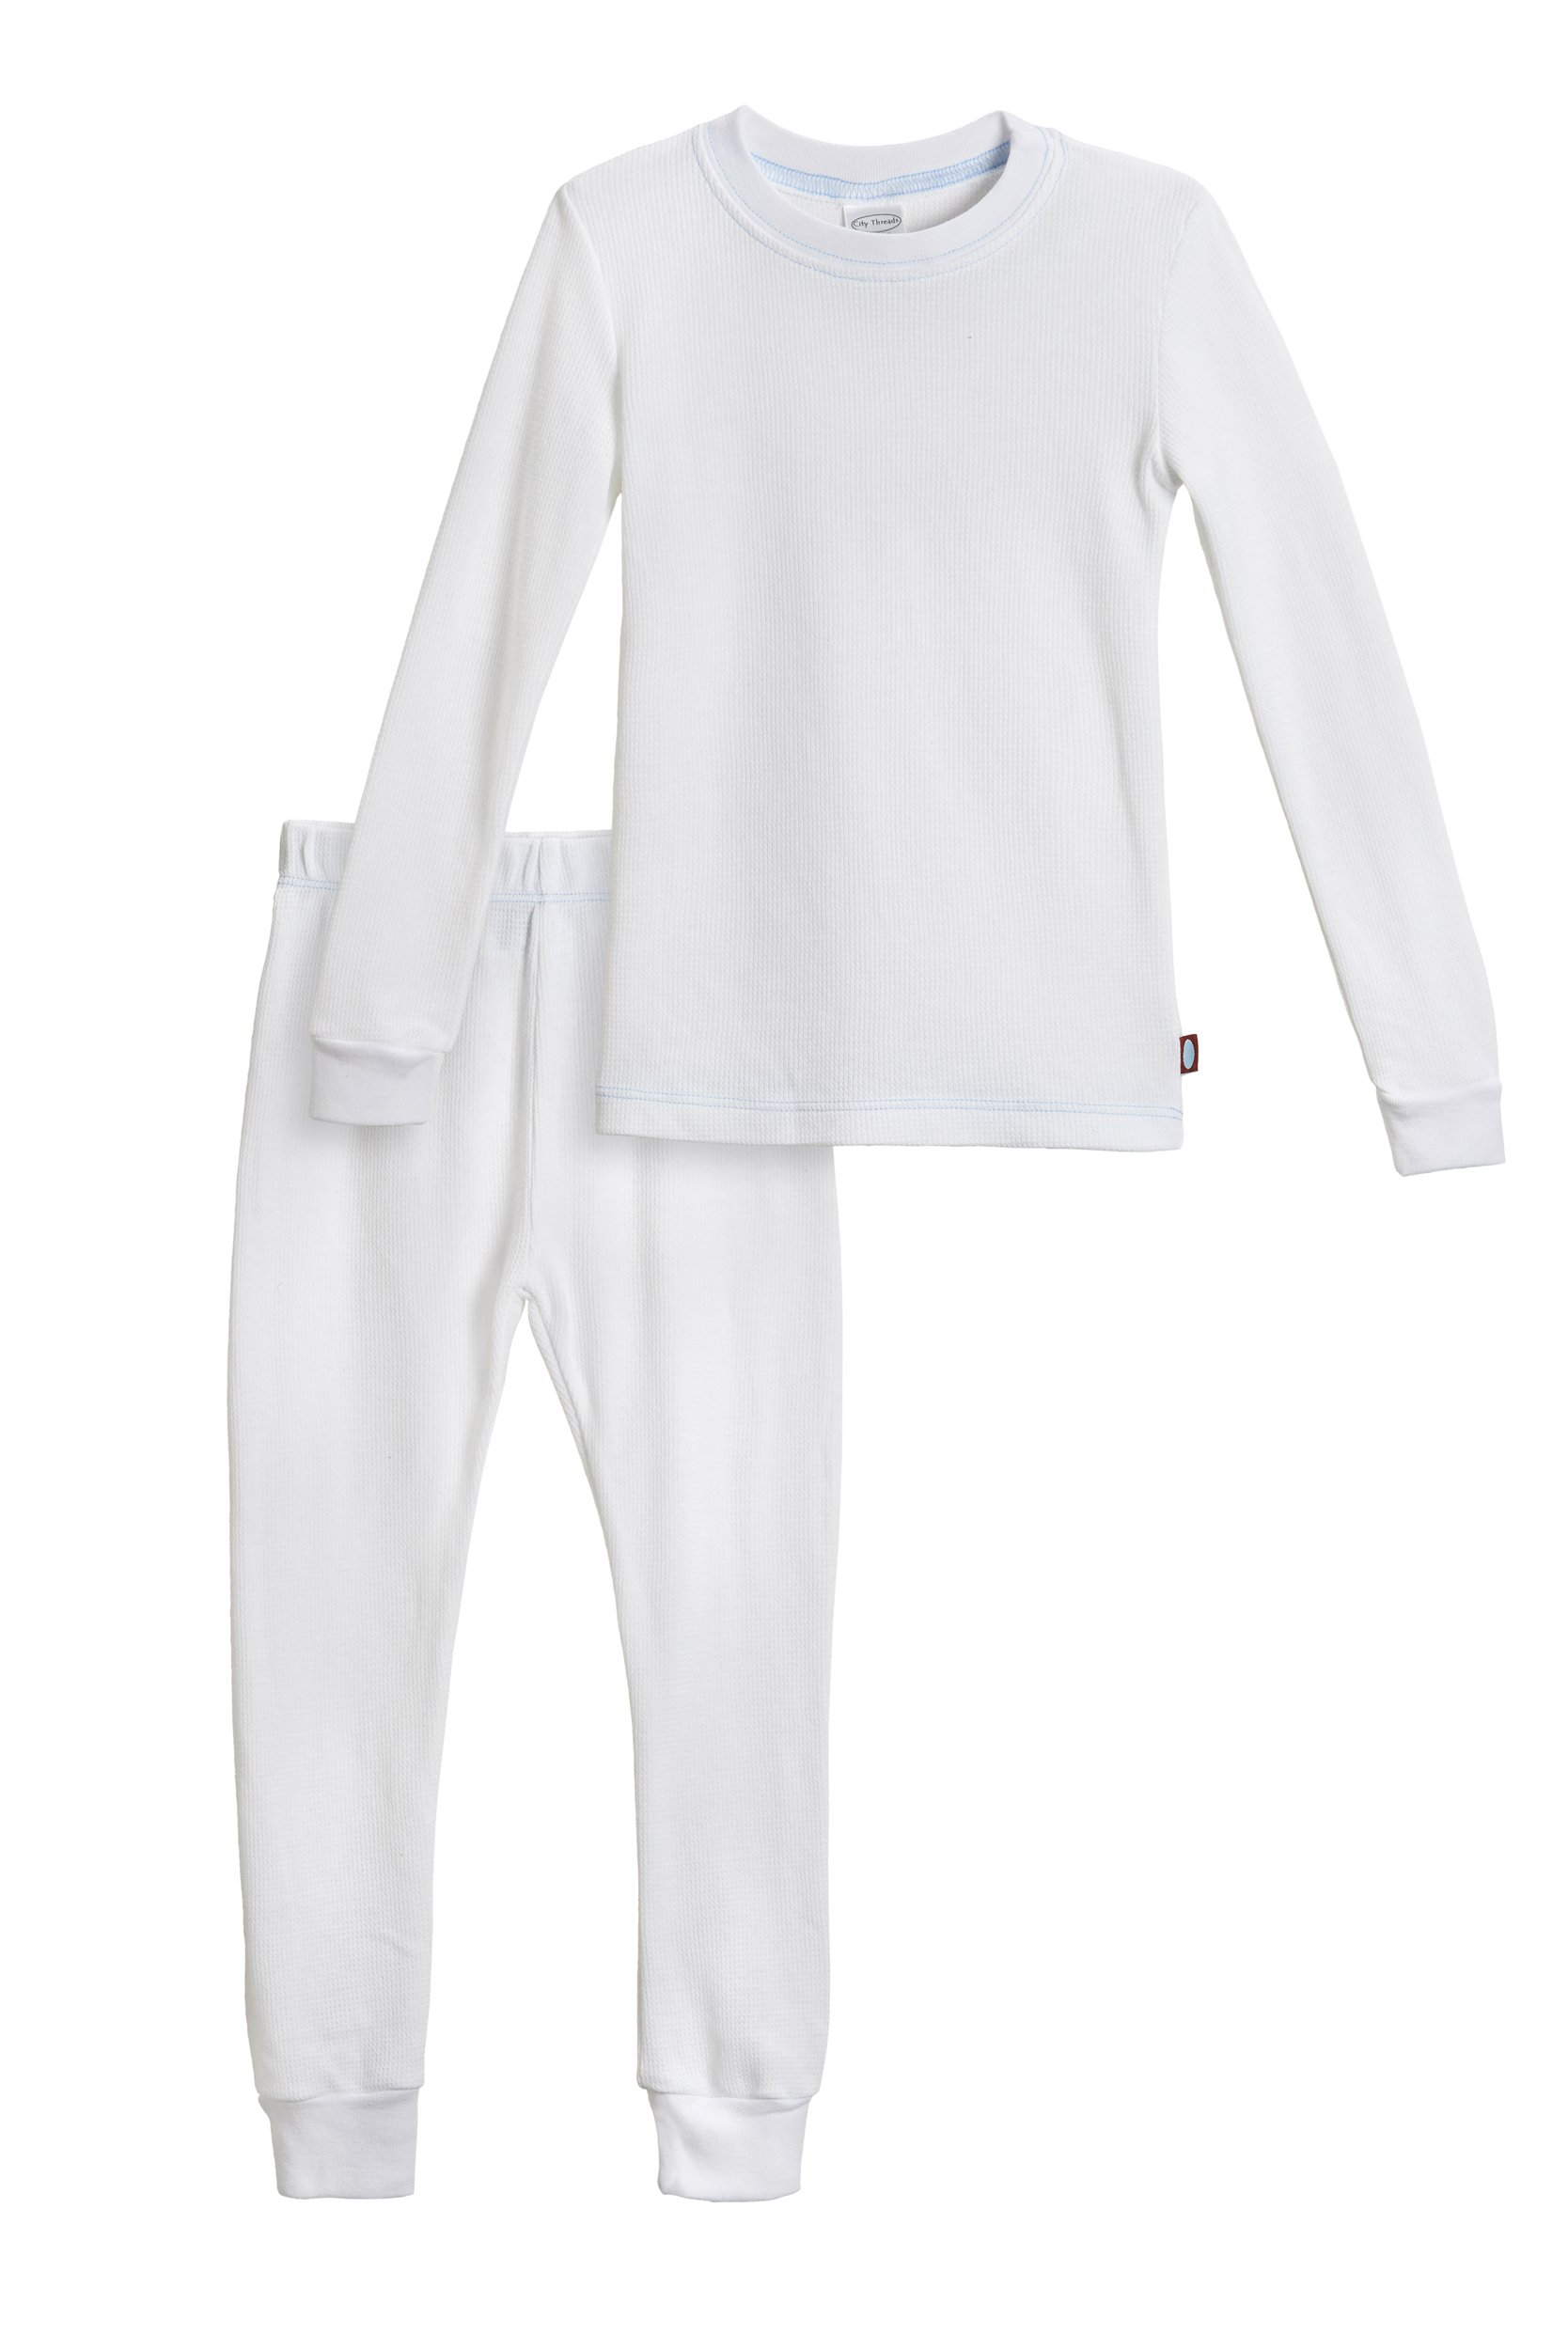 City Threads Baby Boys Thermal Underwear Set Perfect for Sensitive Skin SPD Sensory Friendly Base Layer Thermal Wear Cotton Ski Clothing for Kids Comfortable Ultra Soft, White- 9/12M